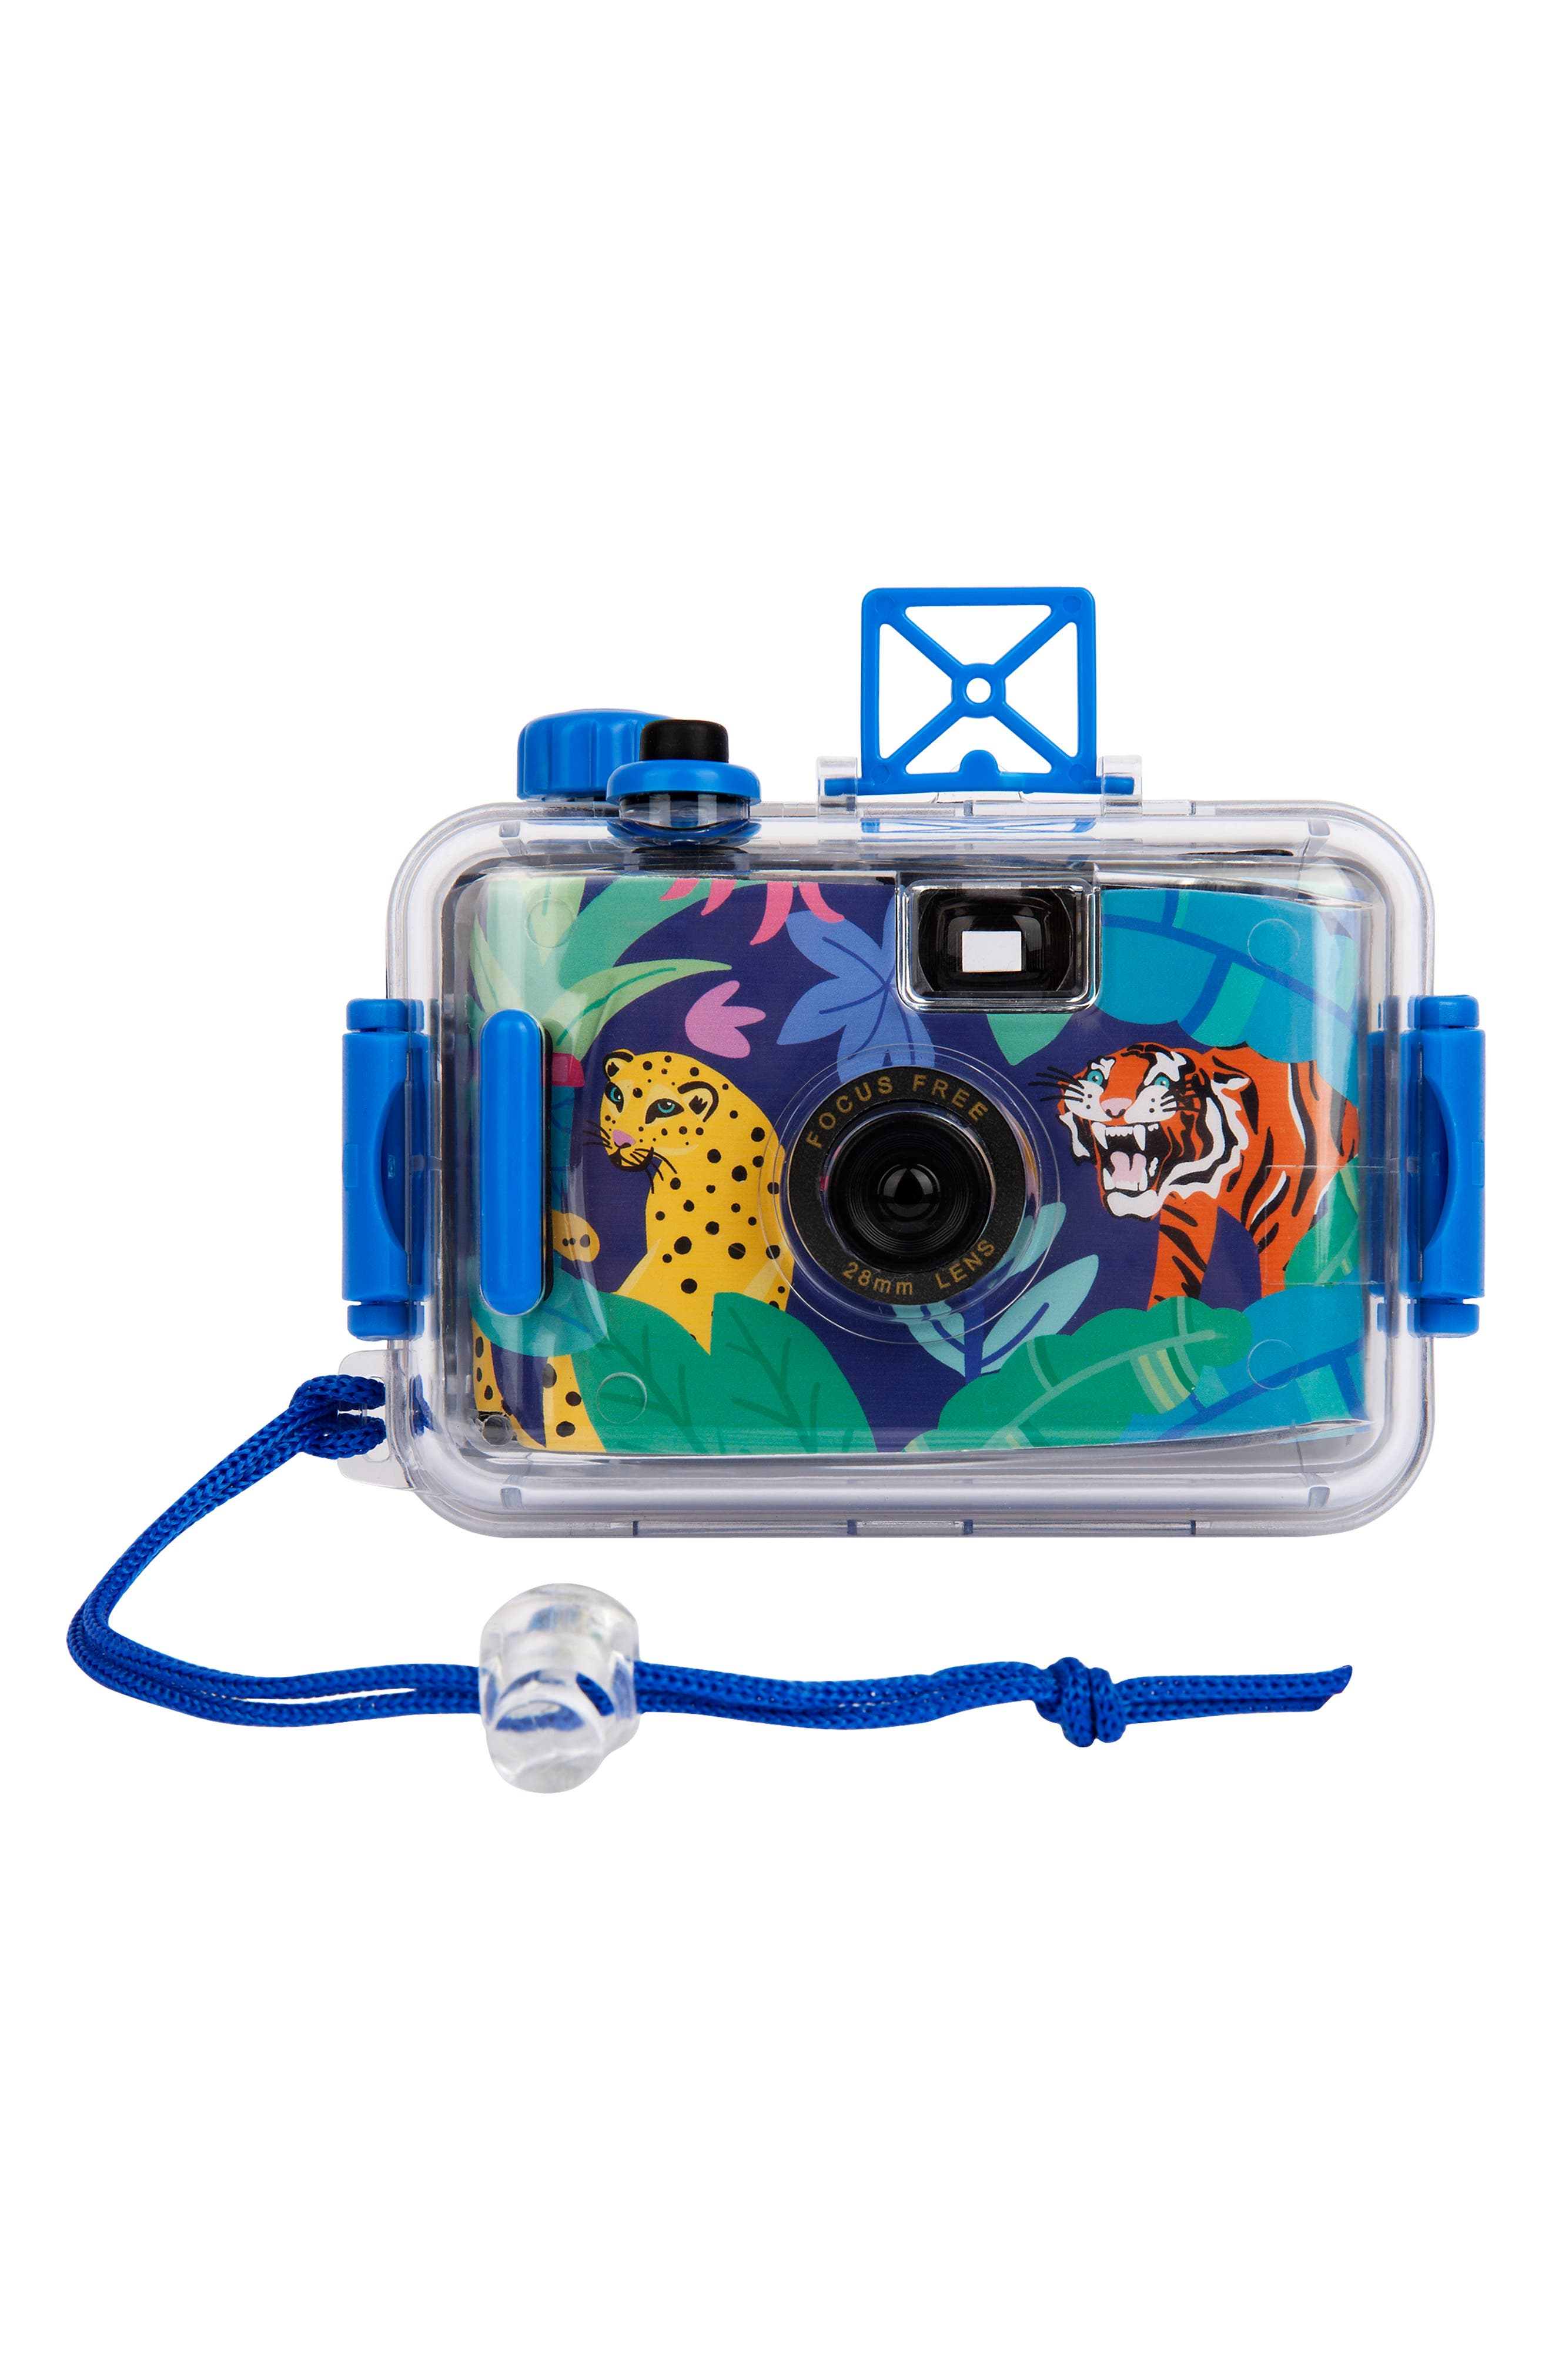 Don\\\'t miss a single happy snap underwater with this 35mm film camera featuring easy focus-free operation and a detachable waterproof casing. Style Name: Sunnylife Jungle Underwater Camera. Style Number: 6018563. Available in stores.